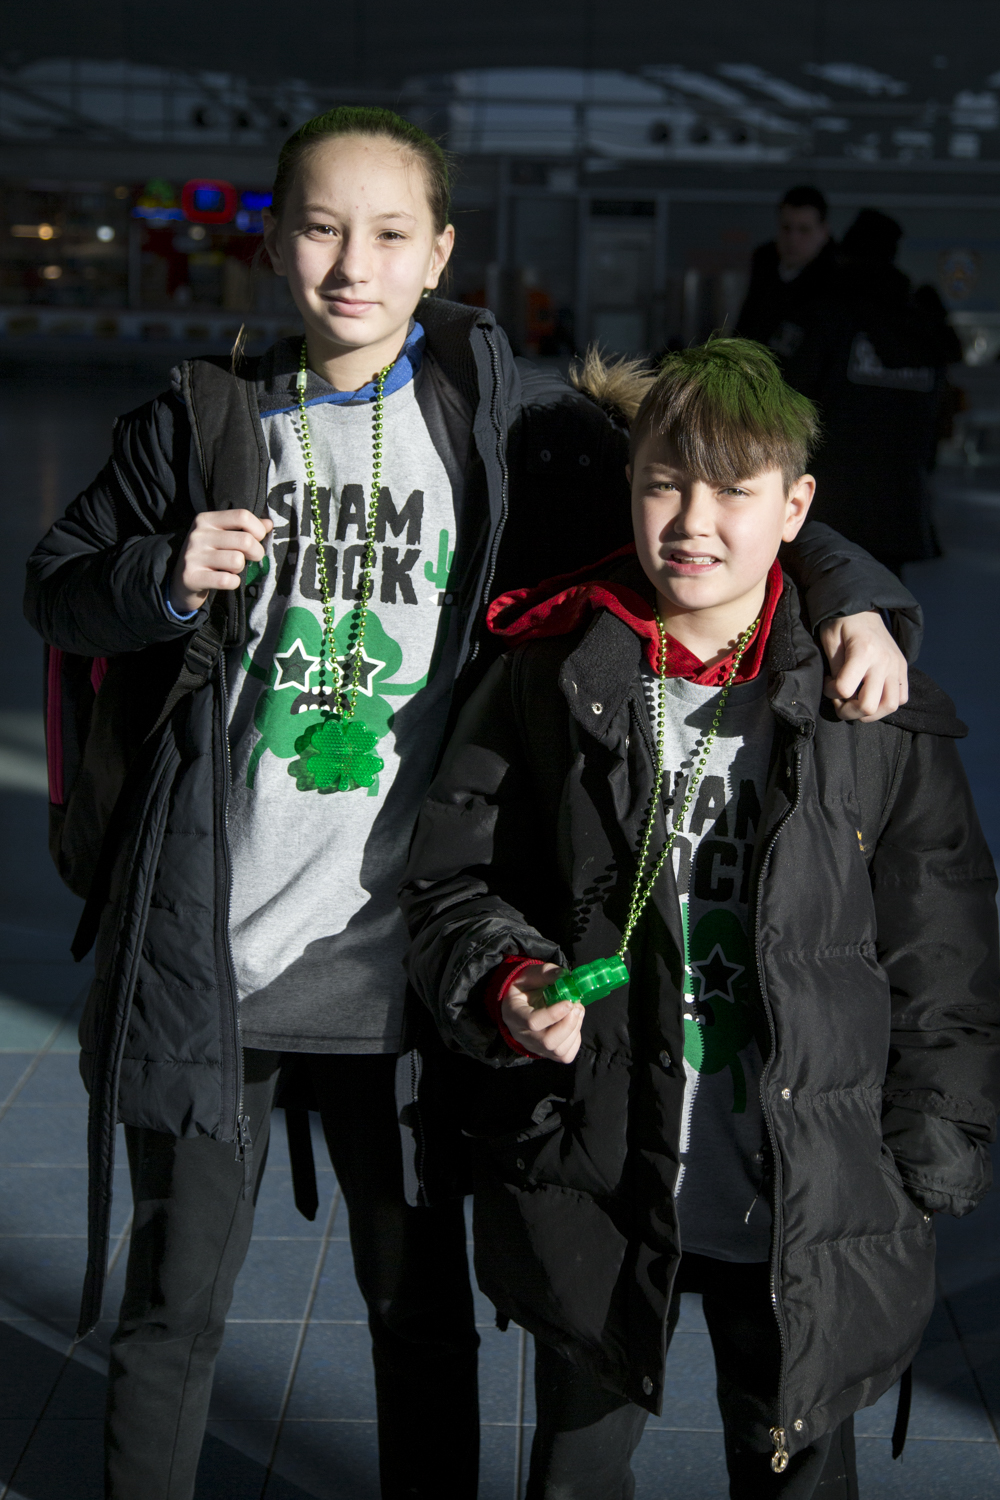 Caelyn Petri, 12, and Jacob Petri, 8, wait for the Staten Island Ferry to Manhattan on St. Patrick's Day. (Staten Island Advance/Shira Stoll)